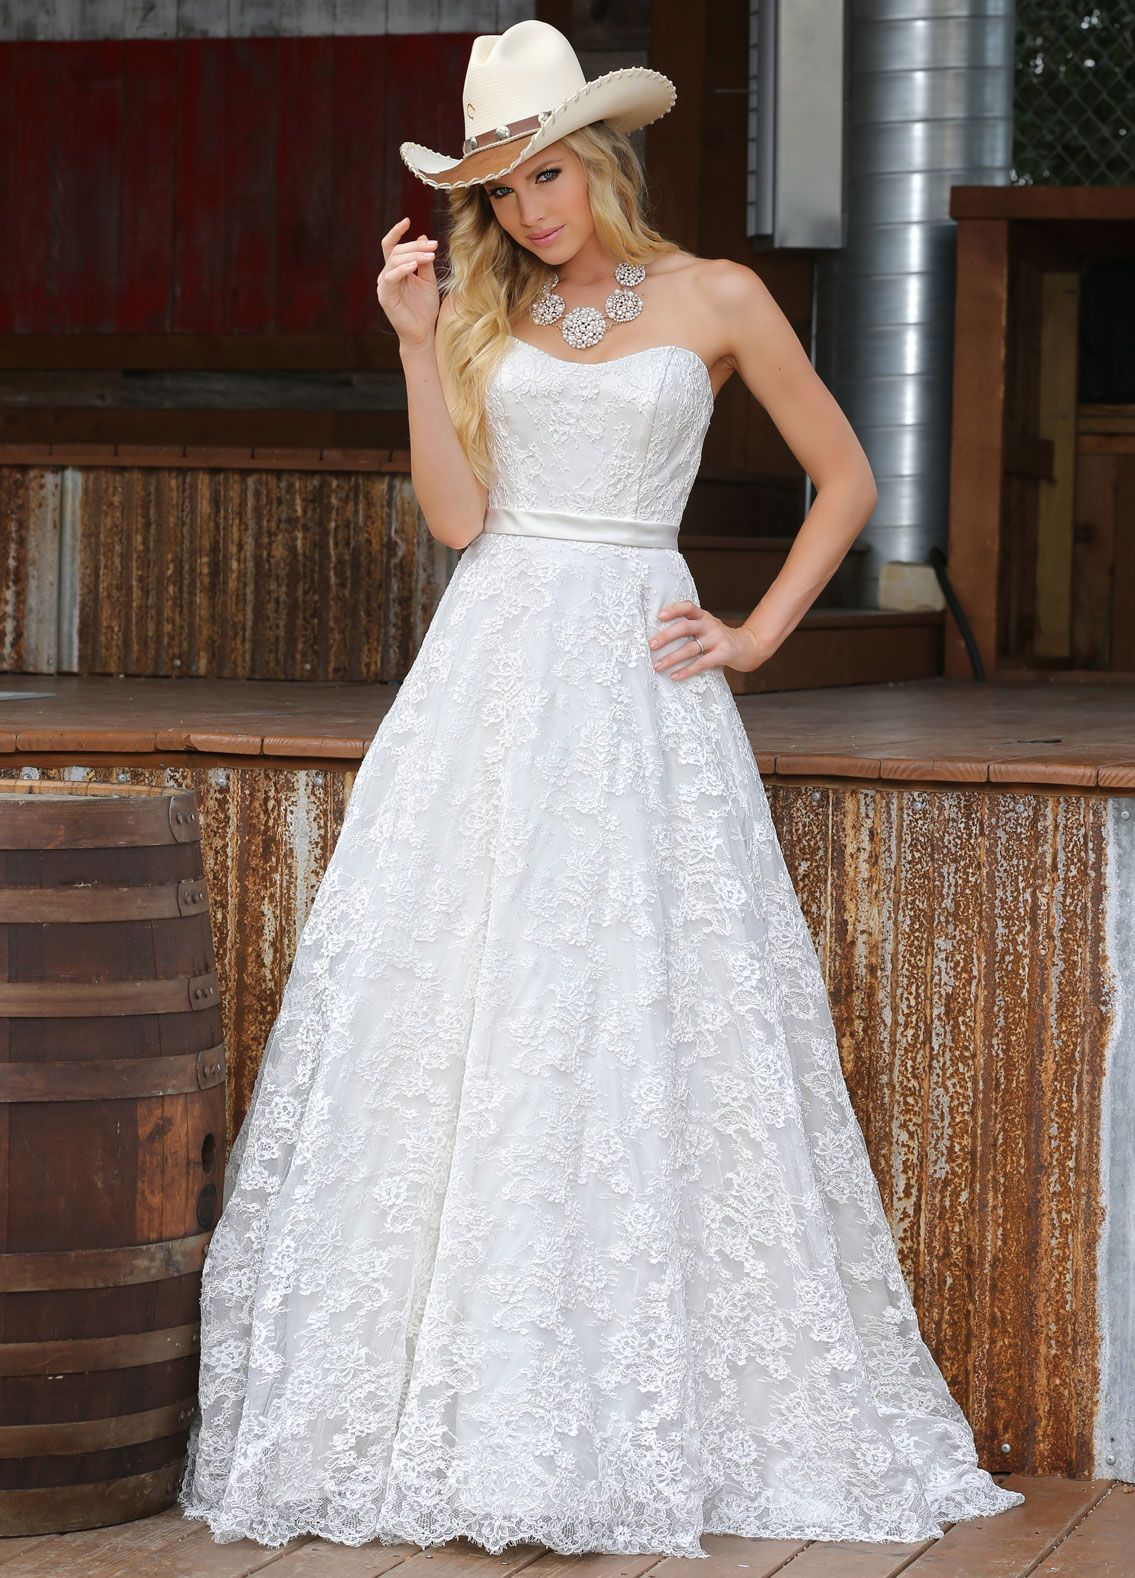 Encounter timeless bridal design and breathtaking lace in style